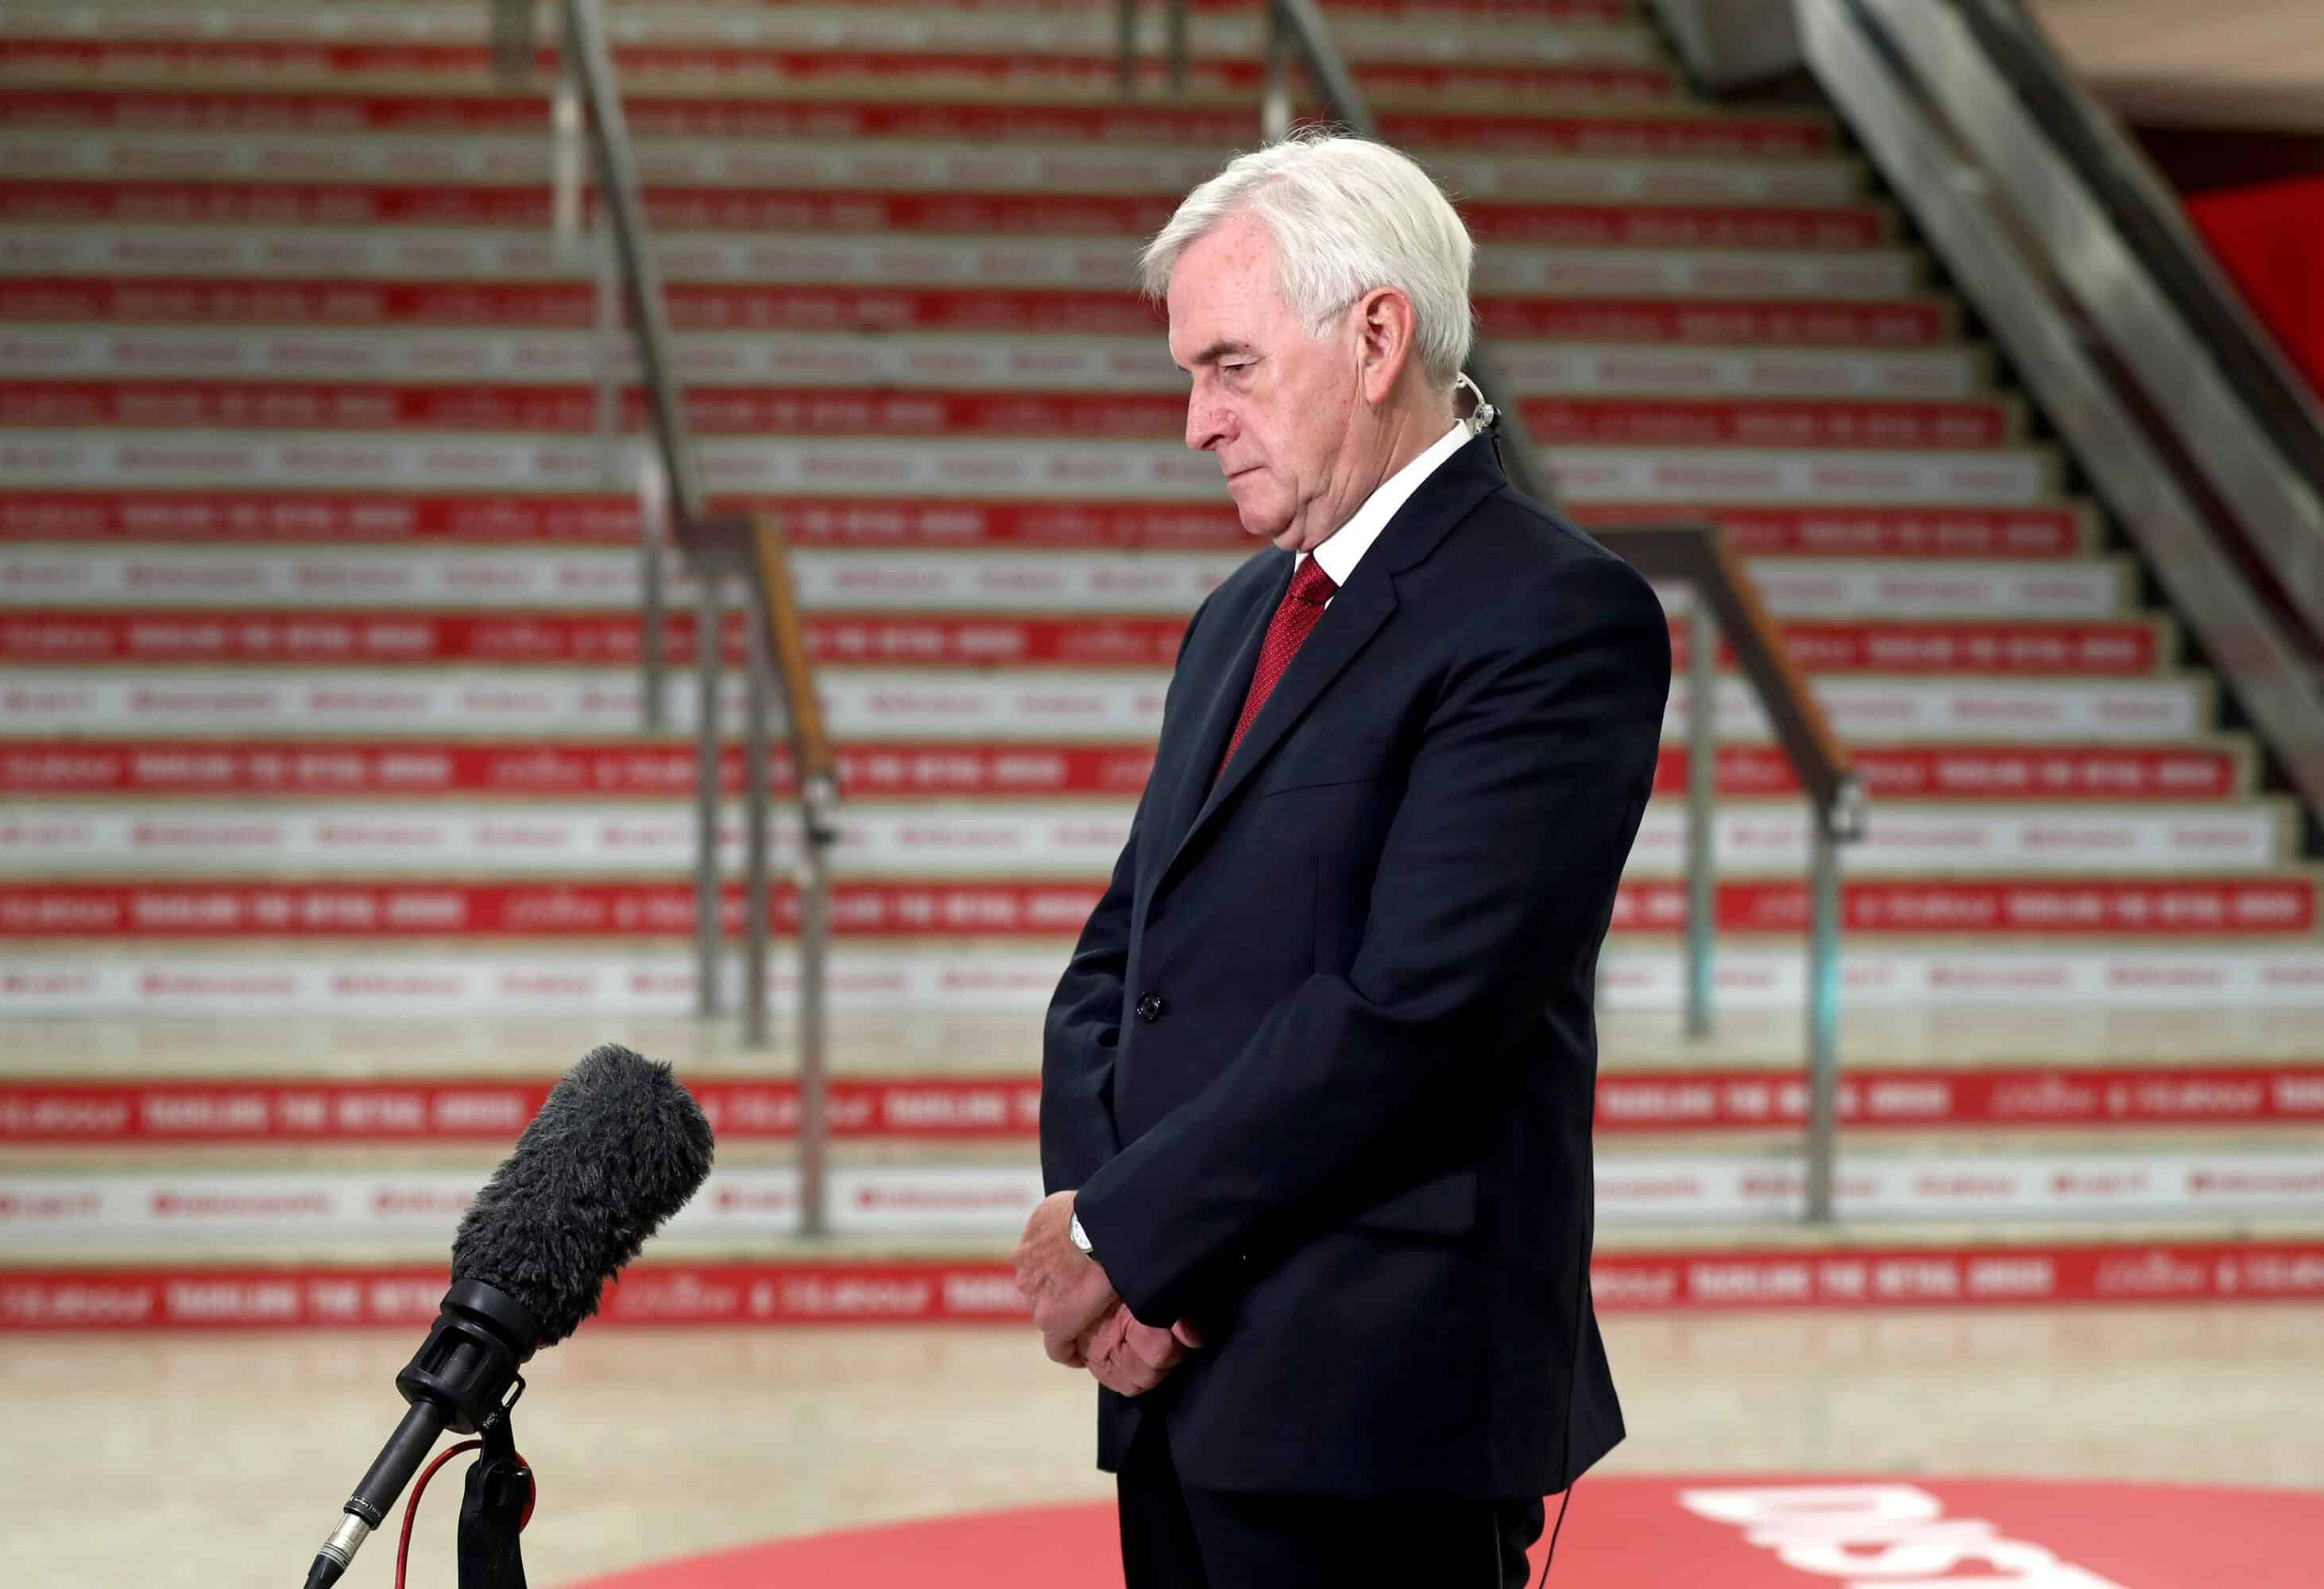 McDonnell sets out Labour plan for 32-hour working week